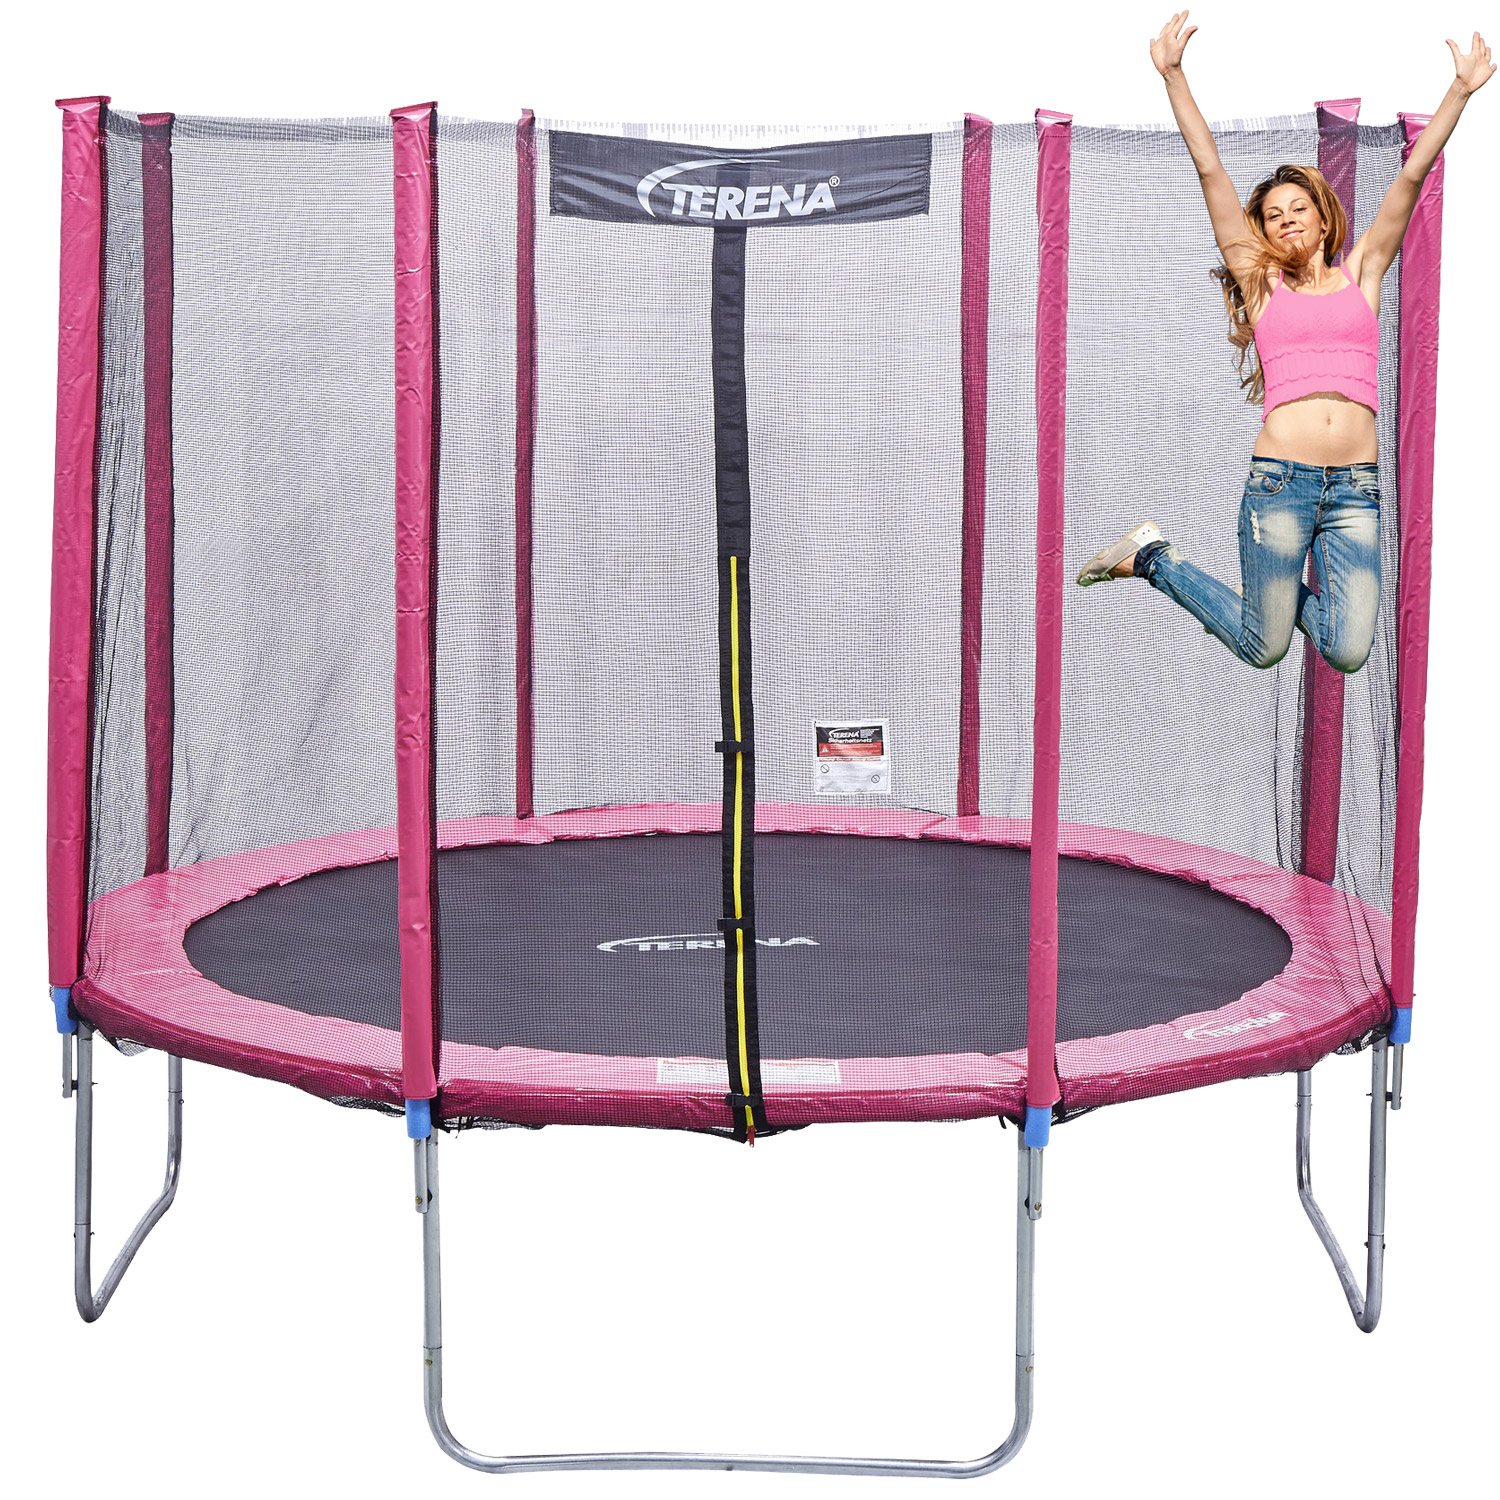 trampolin 305 cm mit netz sicherheitsnetz gartentrampolin. Black Bedroom Furniture Sets. Home Design Ideas